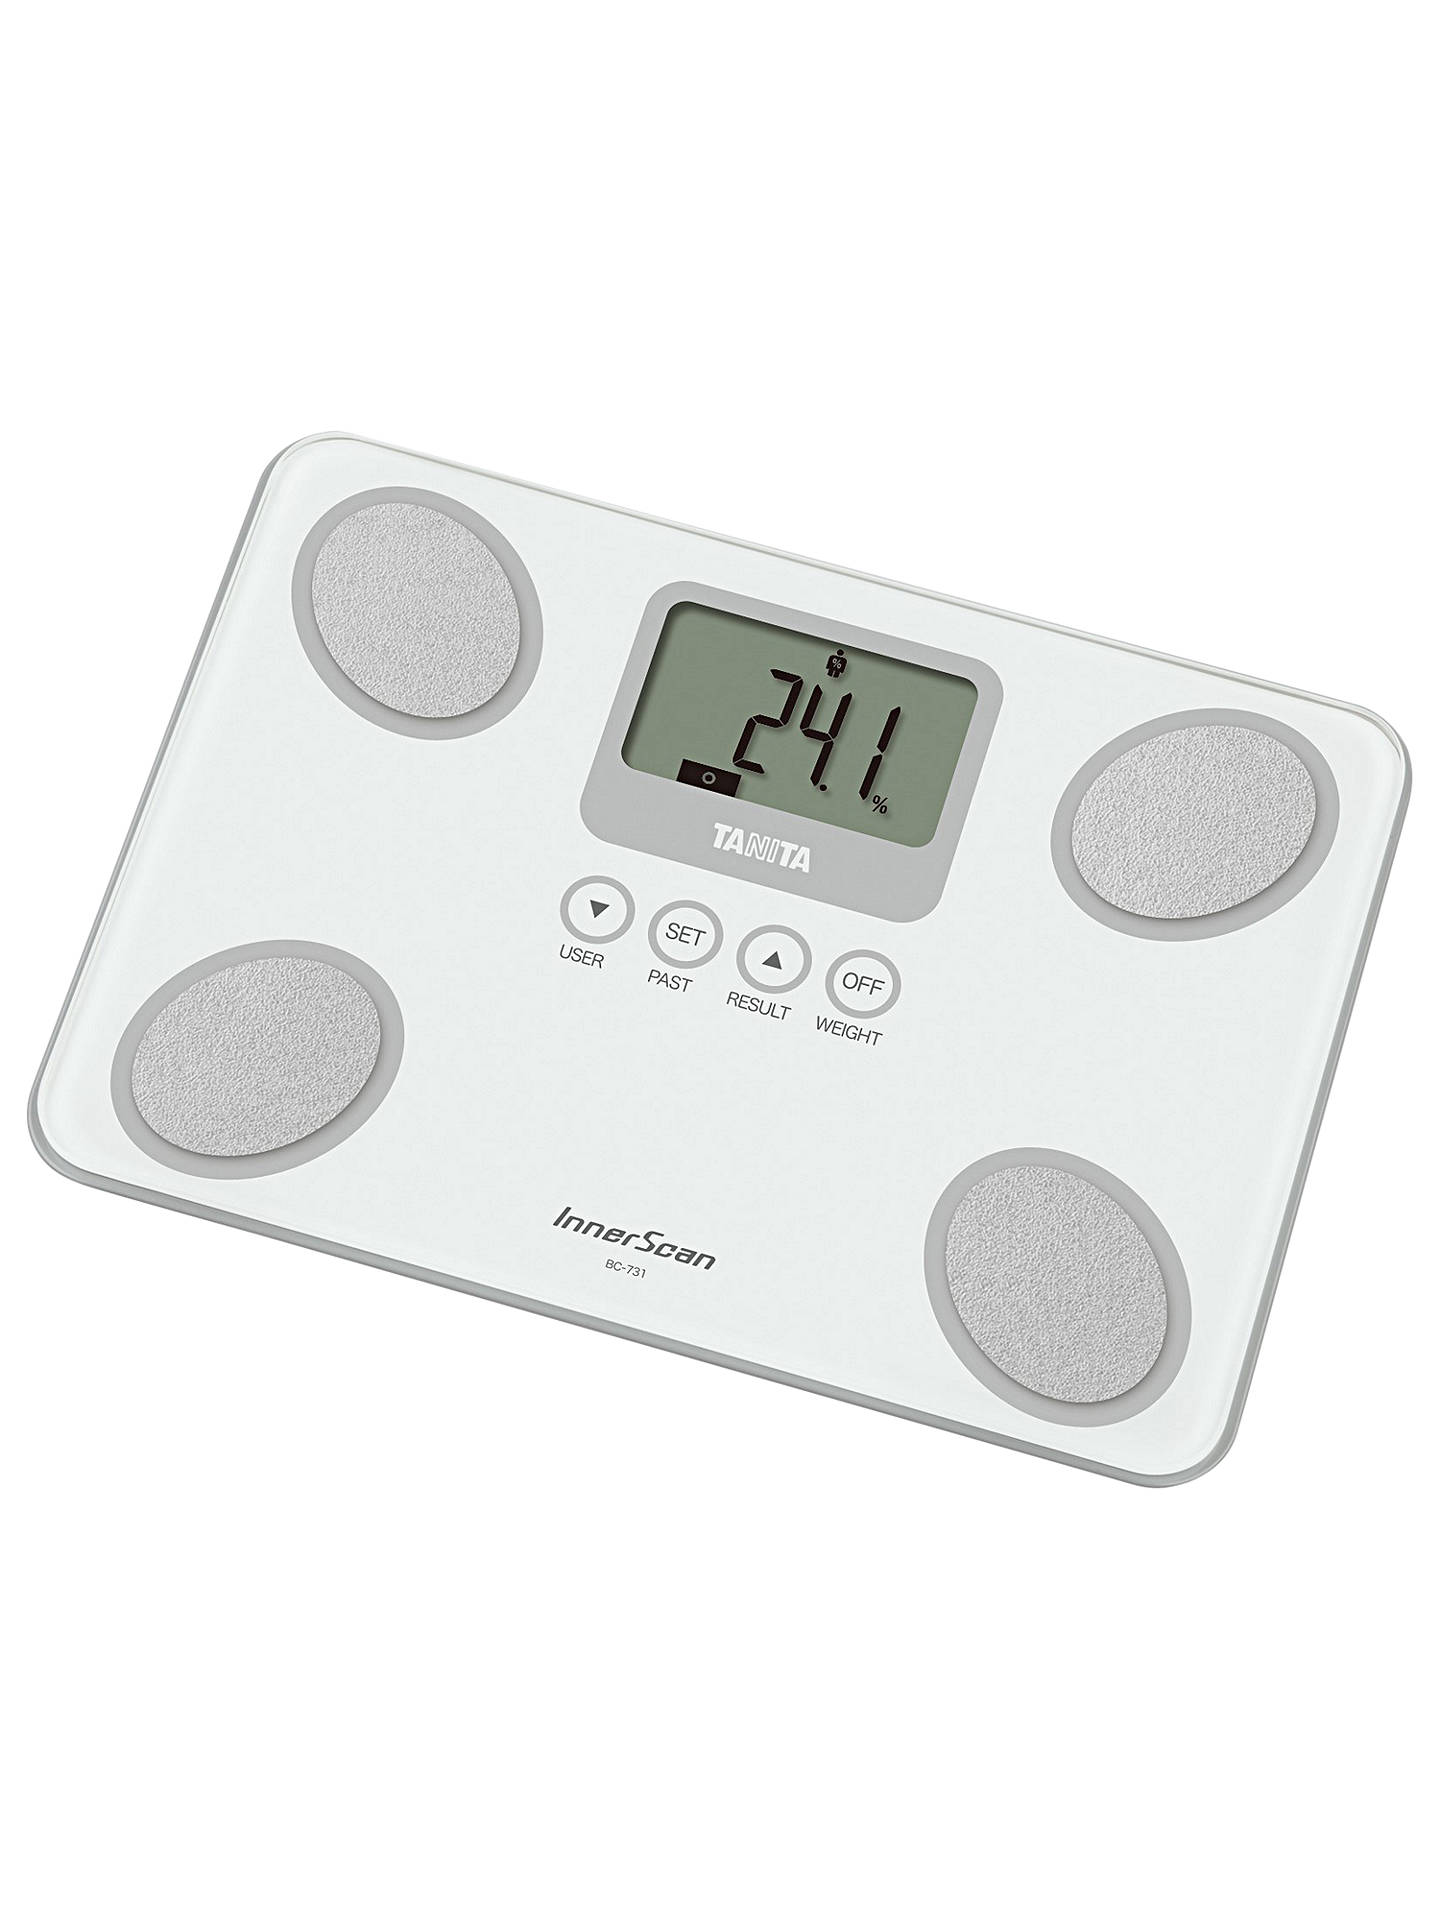 Sensational Tanita Bc 731 Family Health Monitor Scales White Download Free Architecture Designs Scobabritishbridgeorg